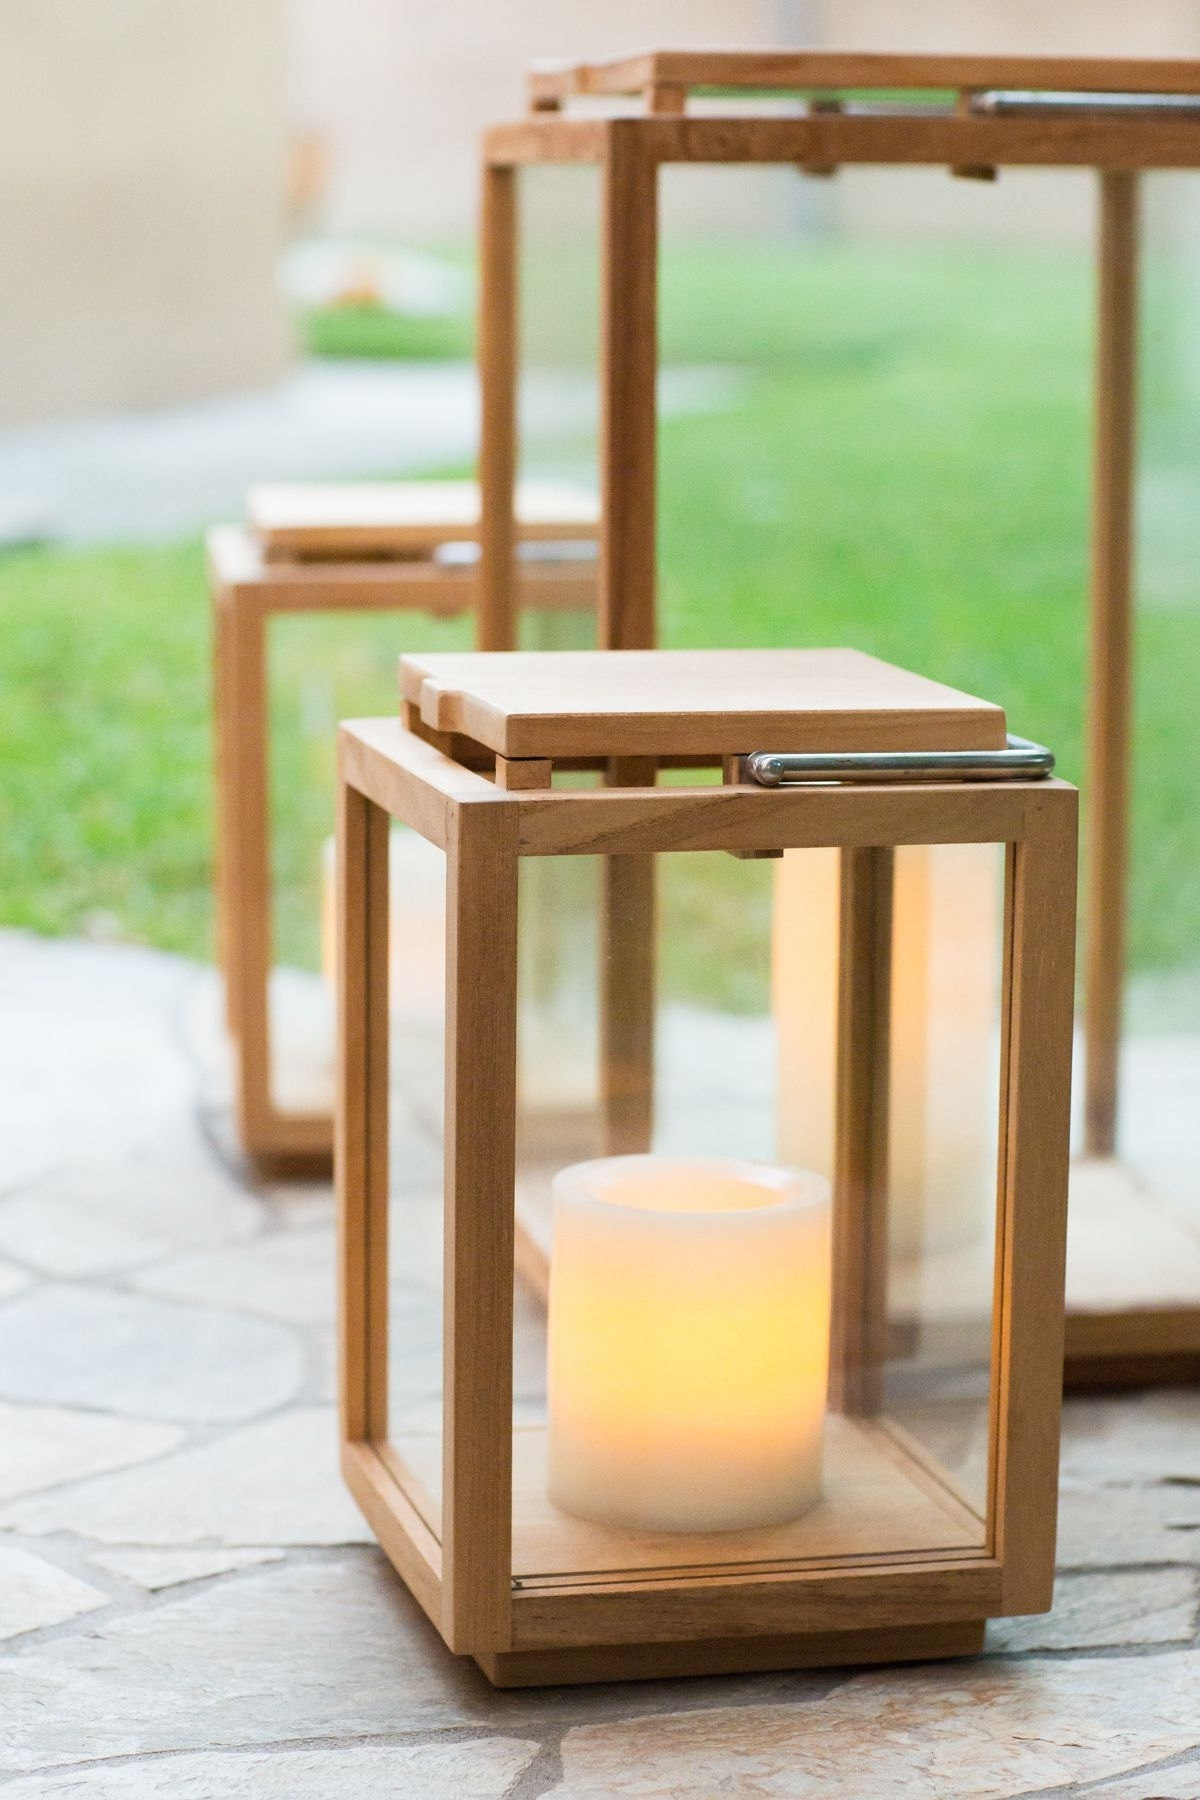 Outdoor Patio Teak Lanterns // Outdoor Lighting // Patio // Outdoor With Regard To Most Popular Outdoor Teak Lanterns (View 13 of 20)